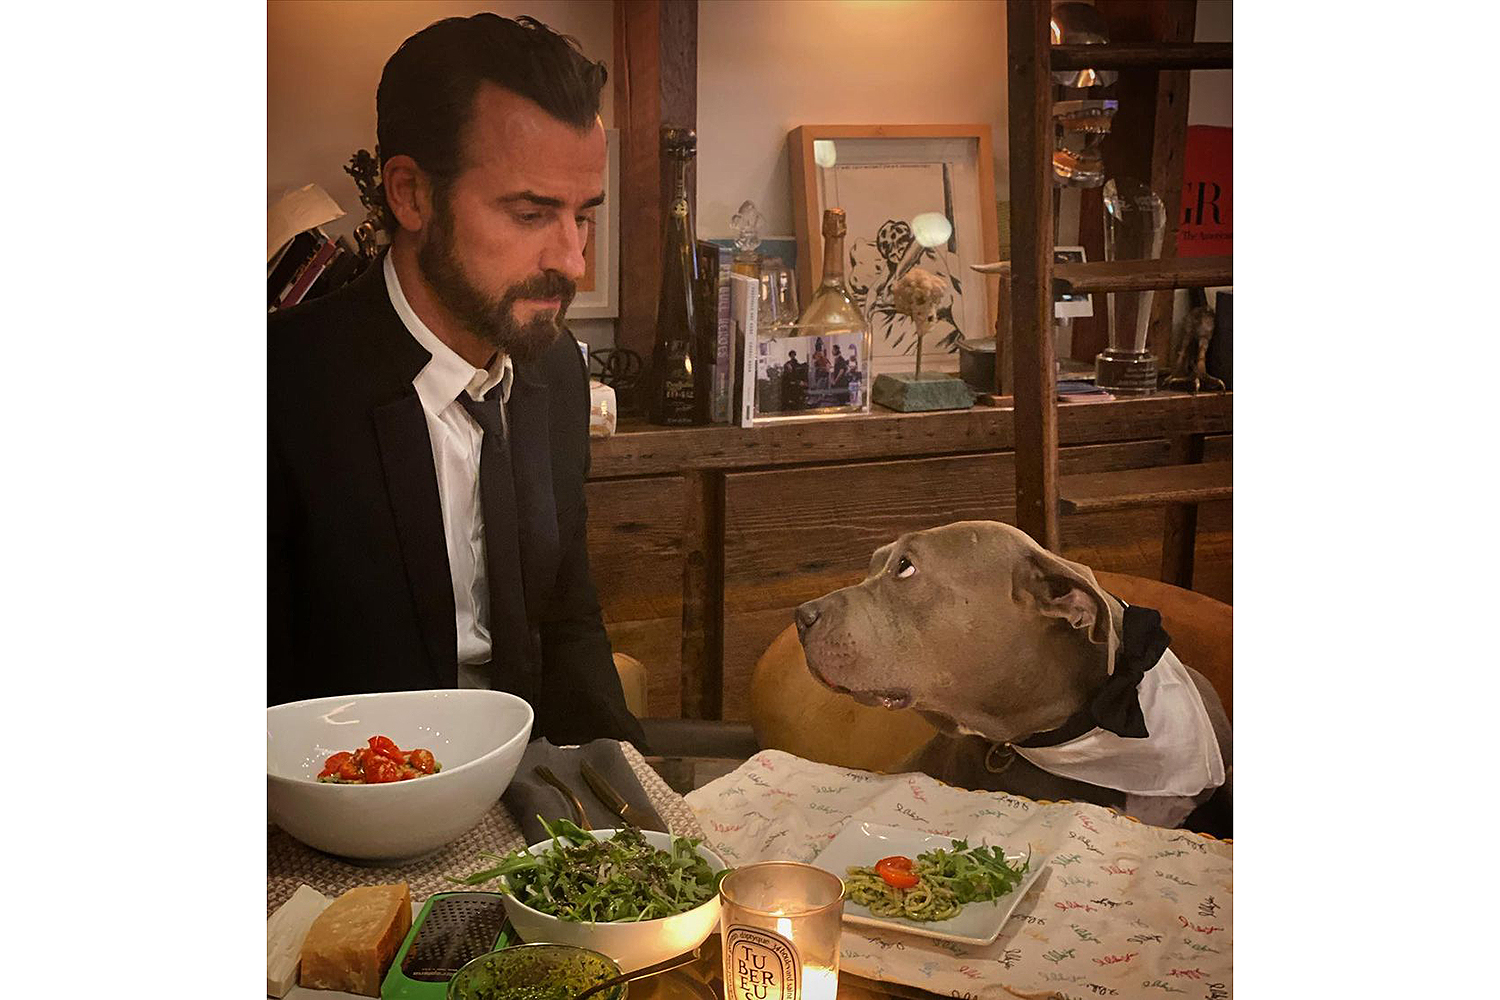 Justin Theroux Explains His 'Formal Friday' Dinners with His Dog Kuma: 'What Else Was I Doing?'